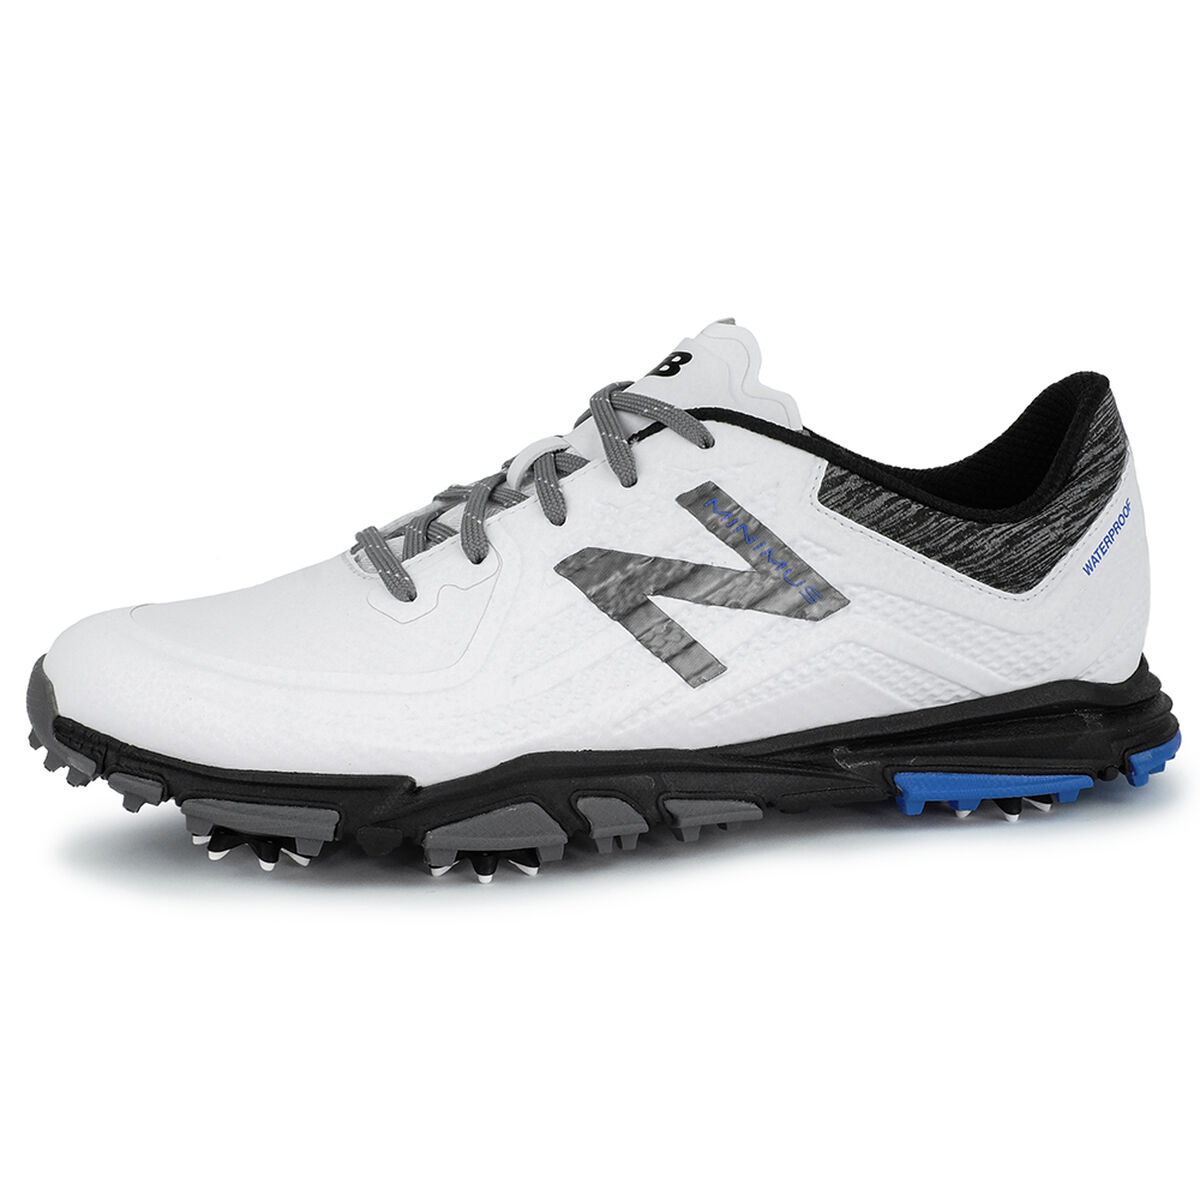 7617648fe New Balance Minimus Tour Men s Golf Shoe - White Black